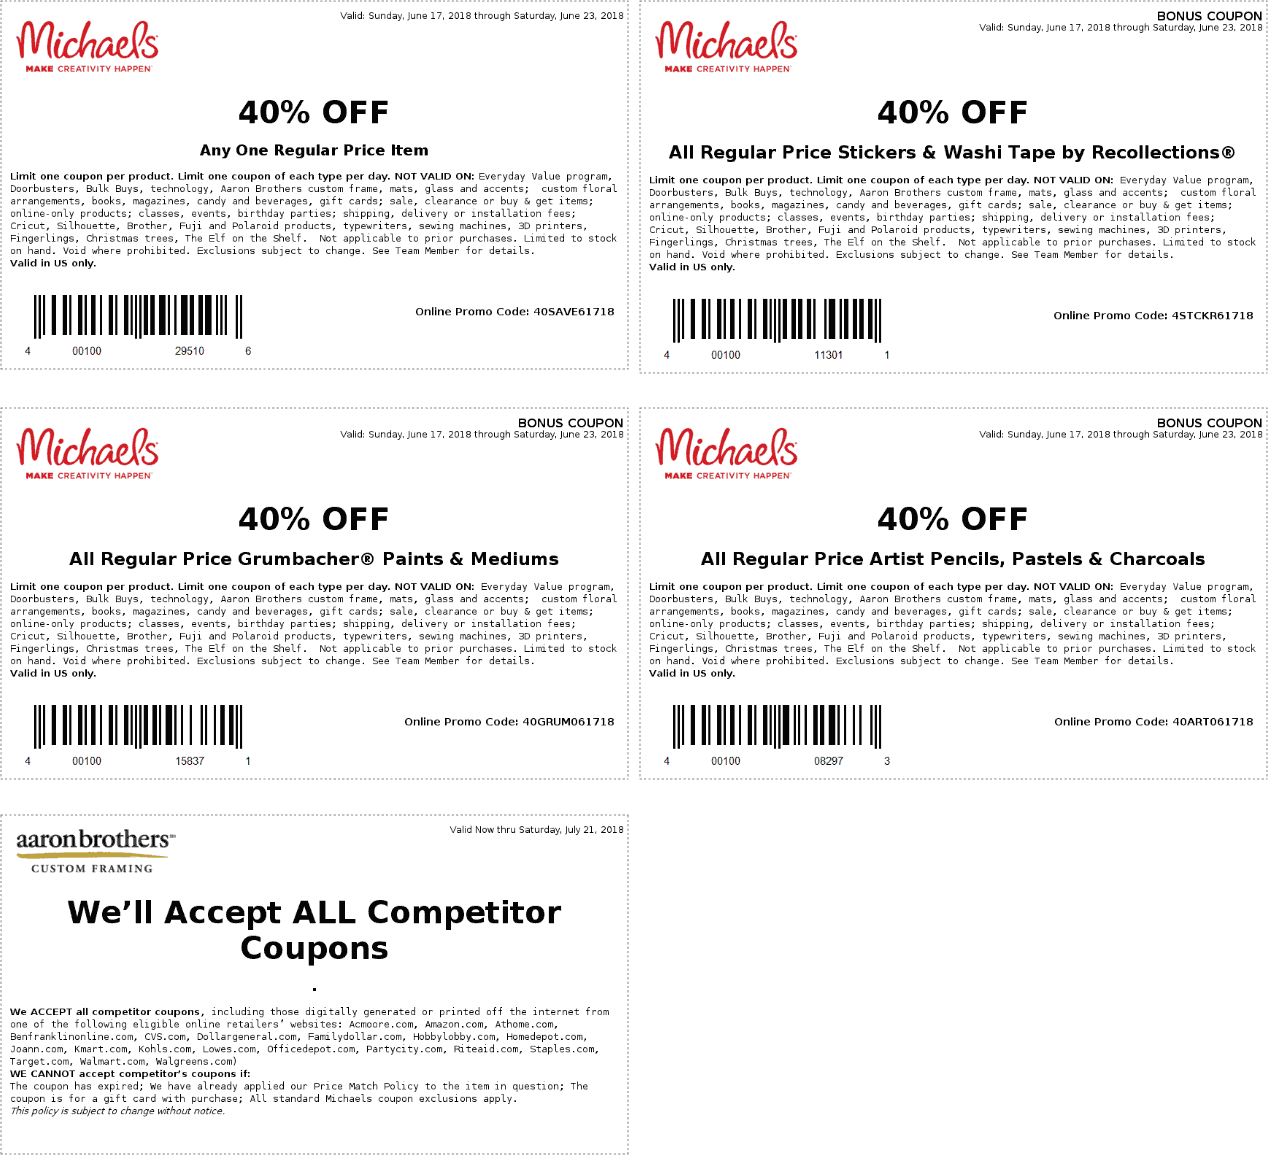 Michaels Coupon September 2018 40% off a single item & more at Michaels, or online via promo code 40SAVE61718